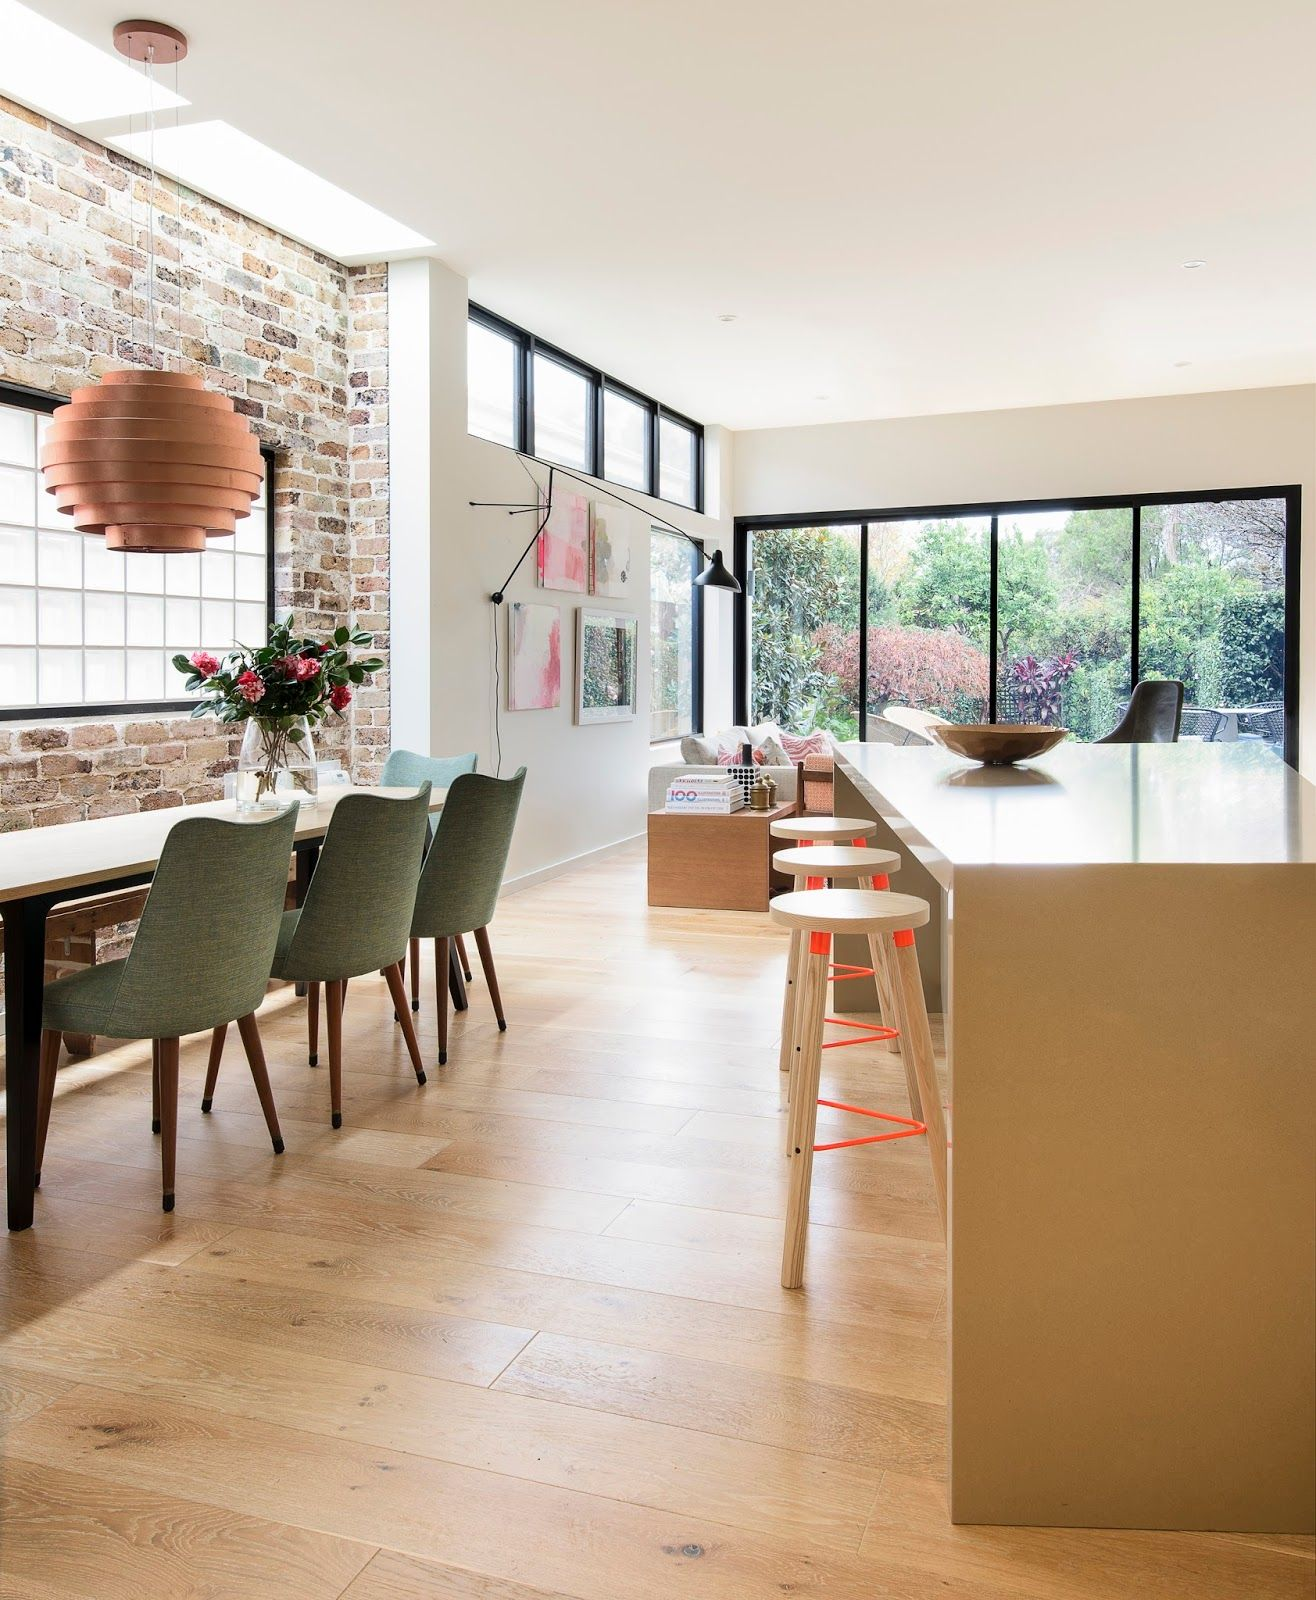 Cheerful Girlish Loft In All Shades Of Pink | Houses ,buildings ...